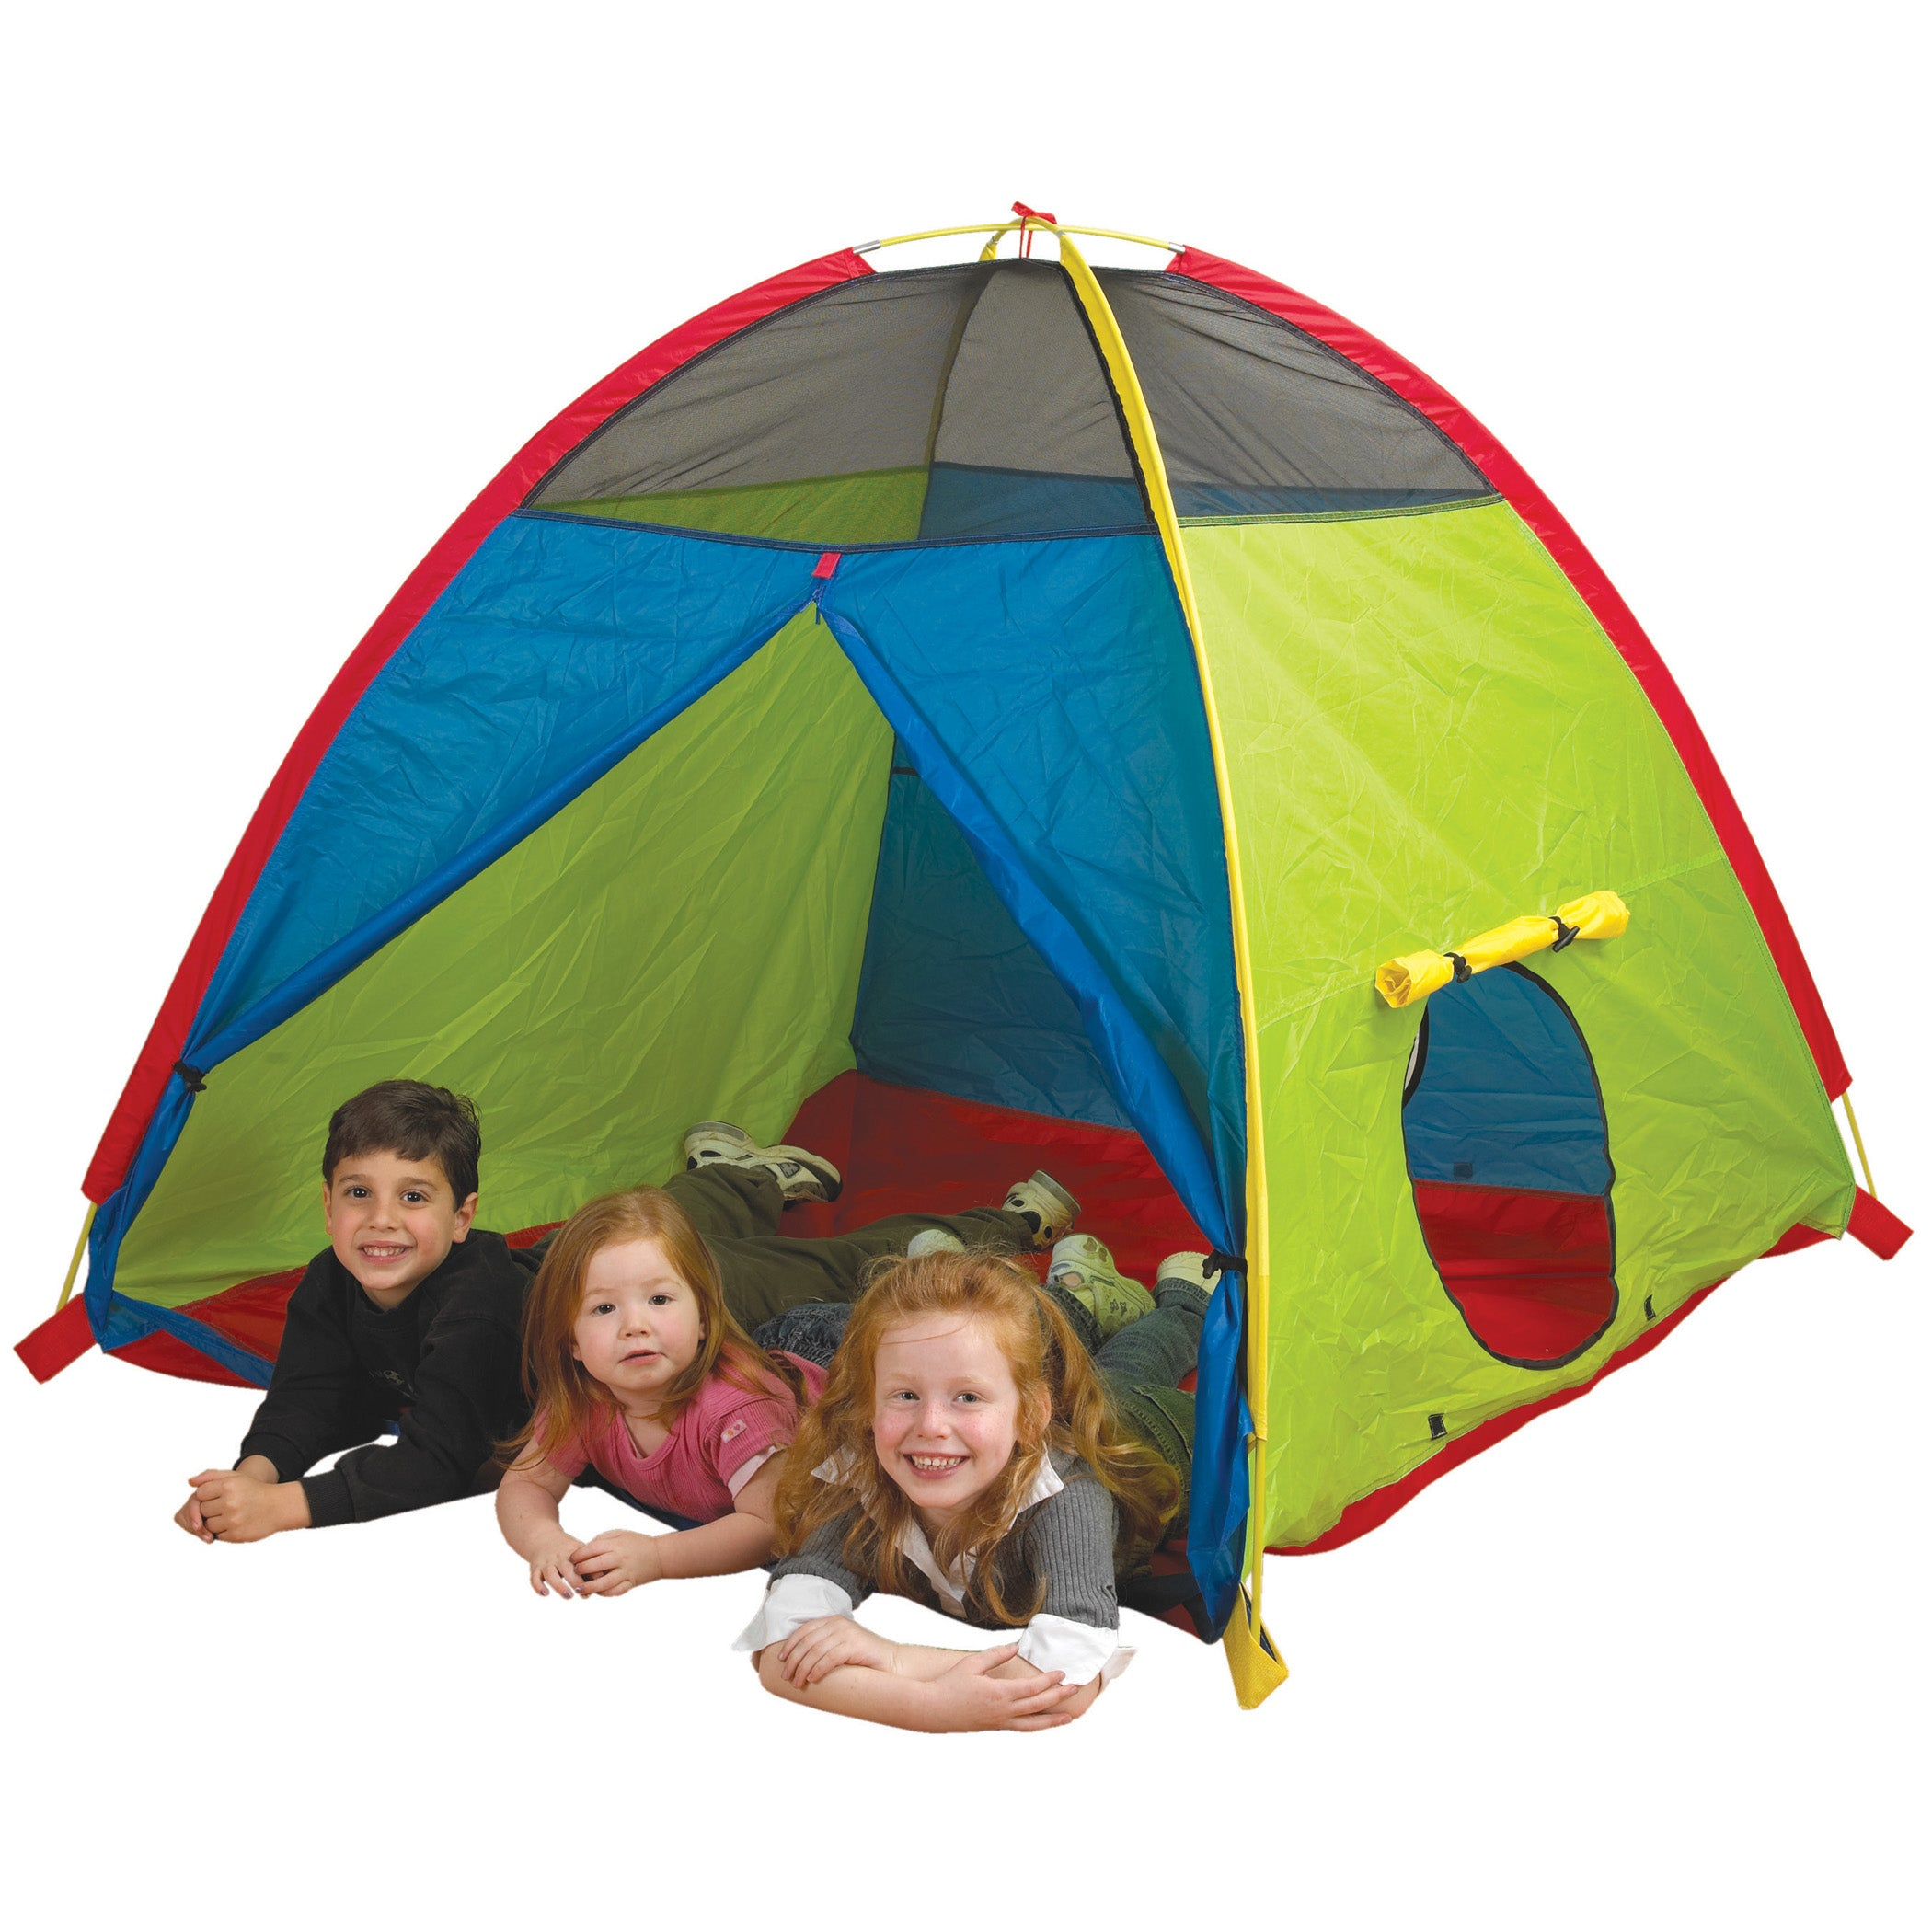 Super Duper 4 Kid Play Tent - Kiddren